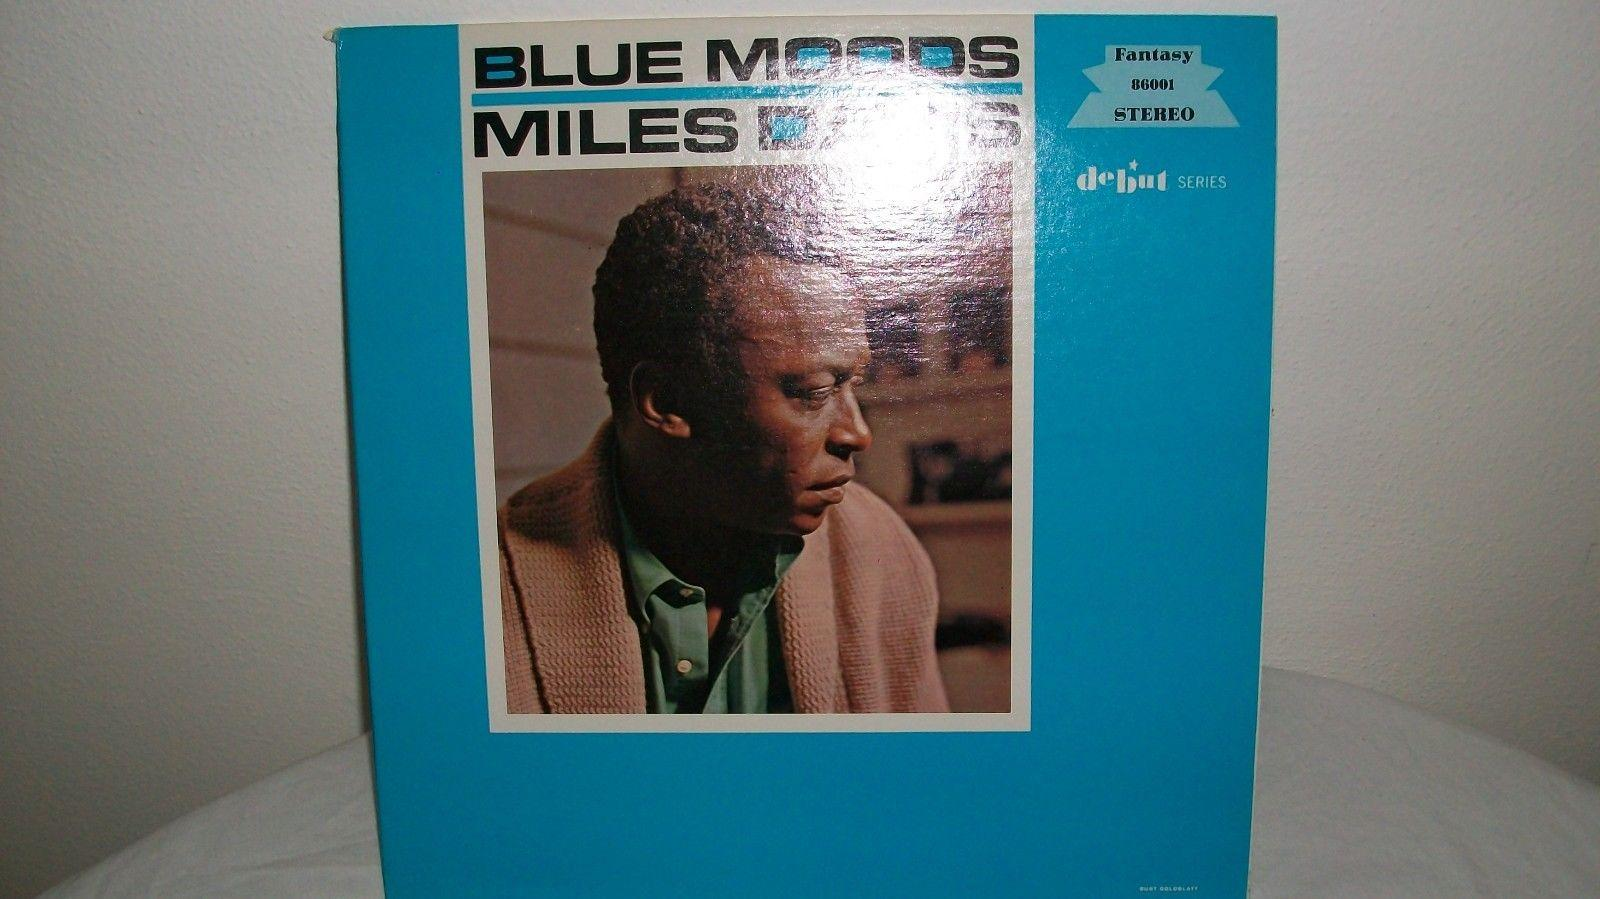 MILES DAVIS blue moods FANASTY F-86001 DEBUT SERIES NM, VG++ VERY NICE